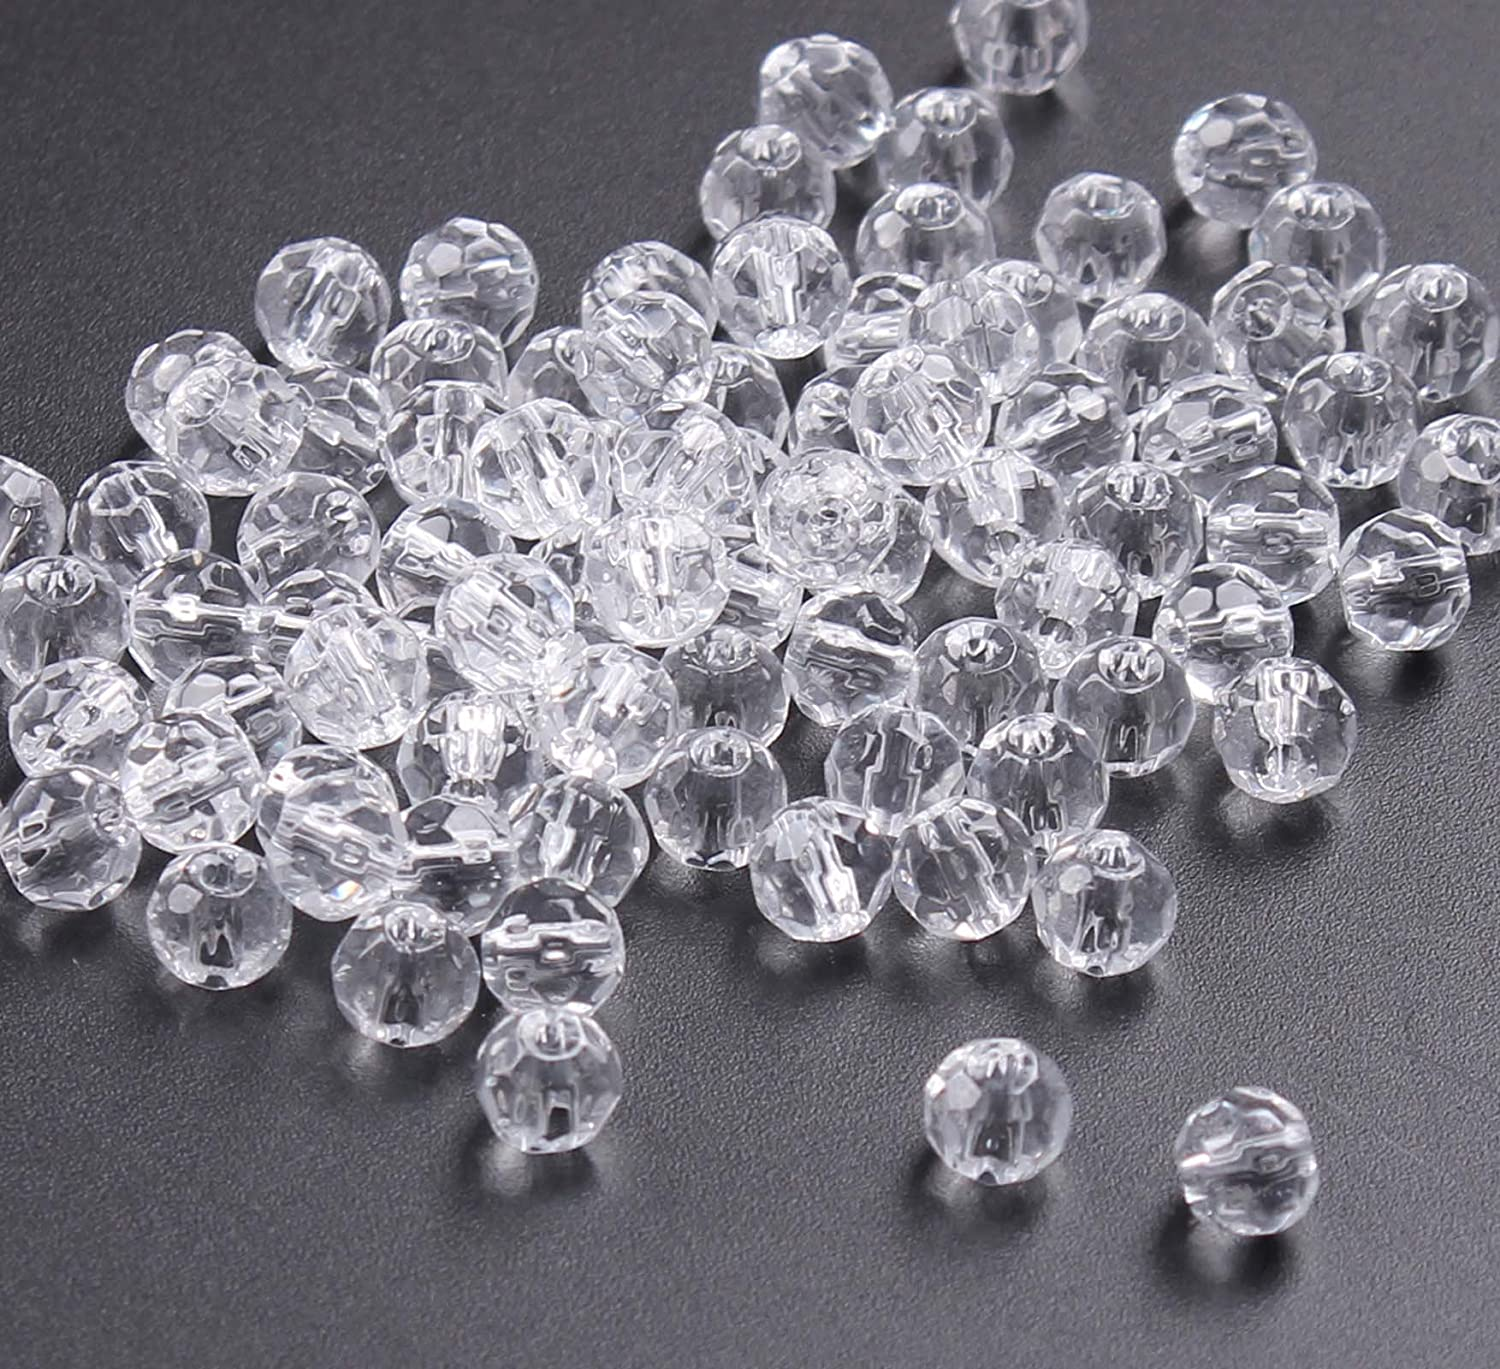 BIHRTC Pack of 300 Rondelle Faceted Crystal Glass Spacer Loose Beads for Jewelry Making Findings 6mm, Clear